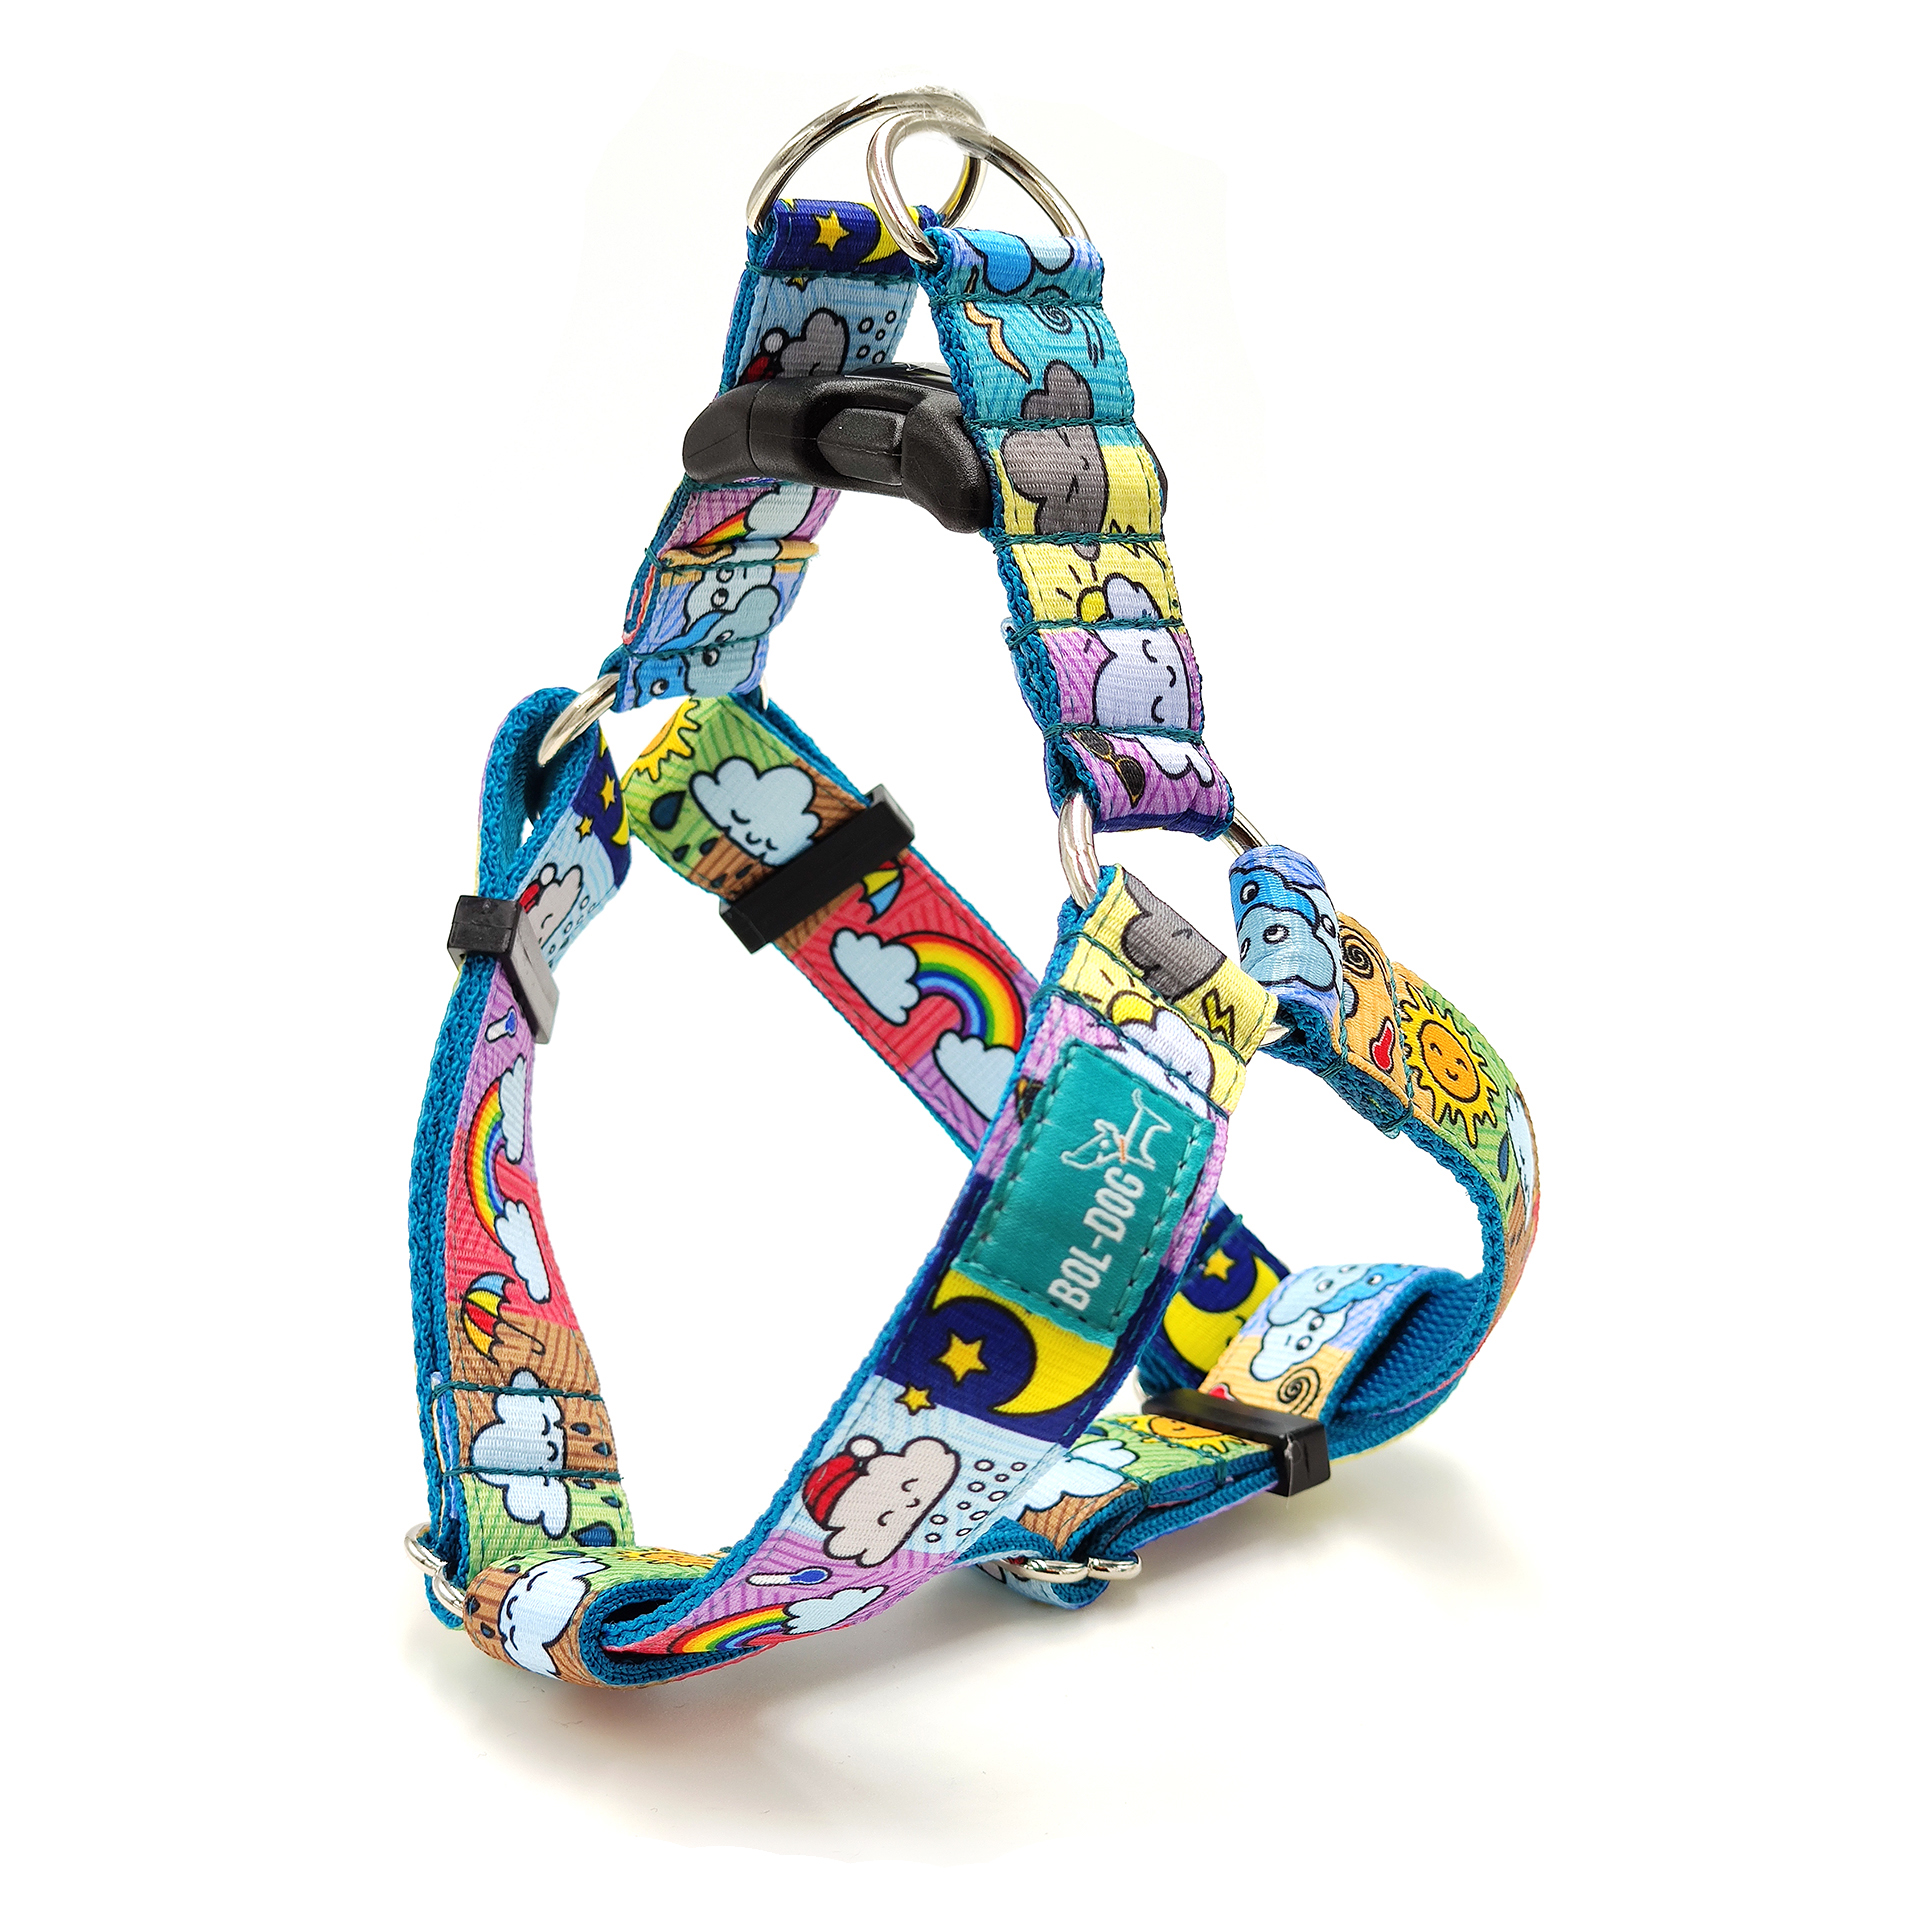 Changeable dog harness